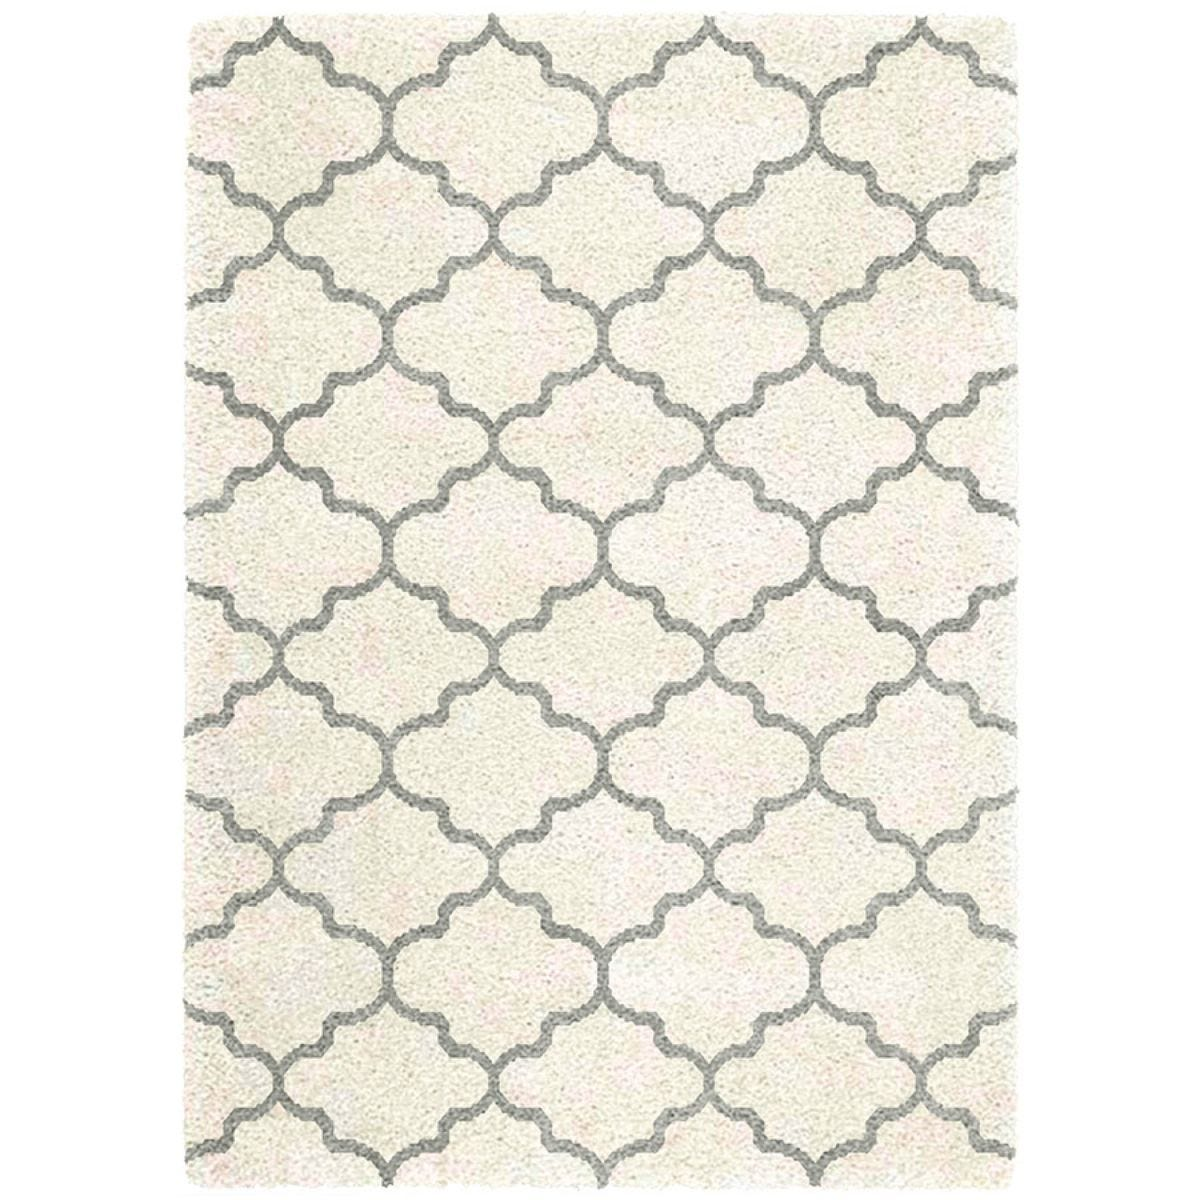 Asiatic Small Logan Ogee Rug - Ivory / Grey